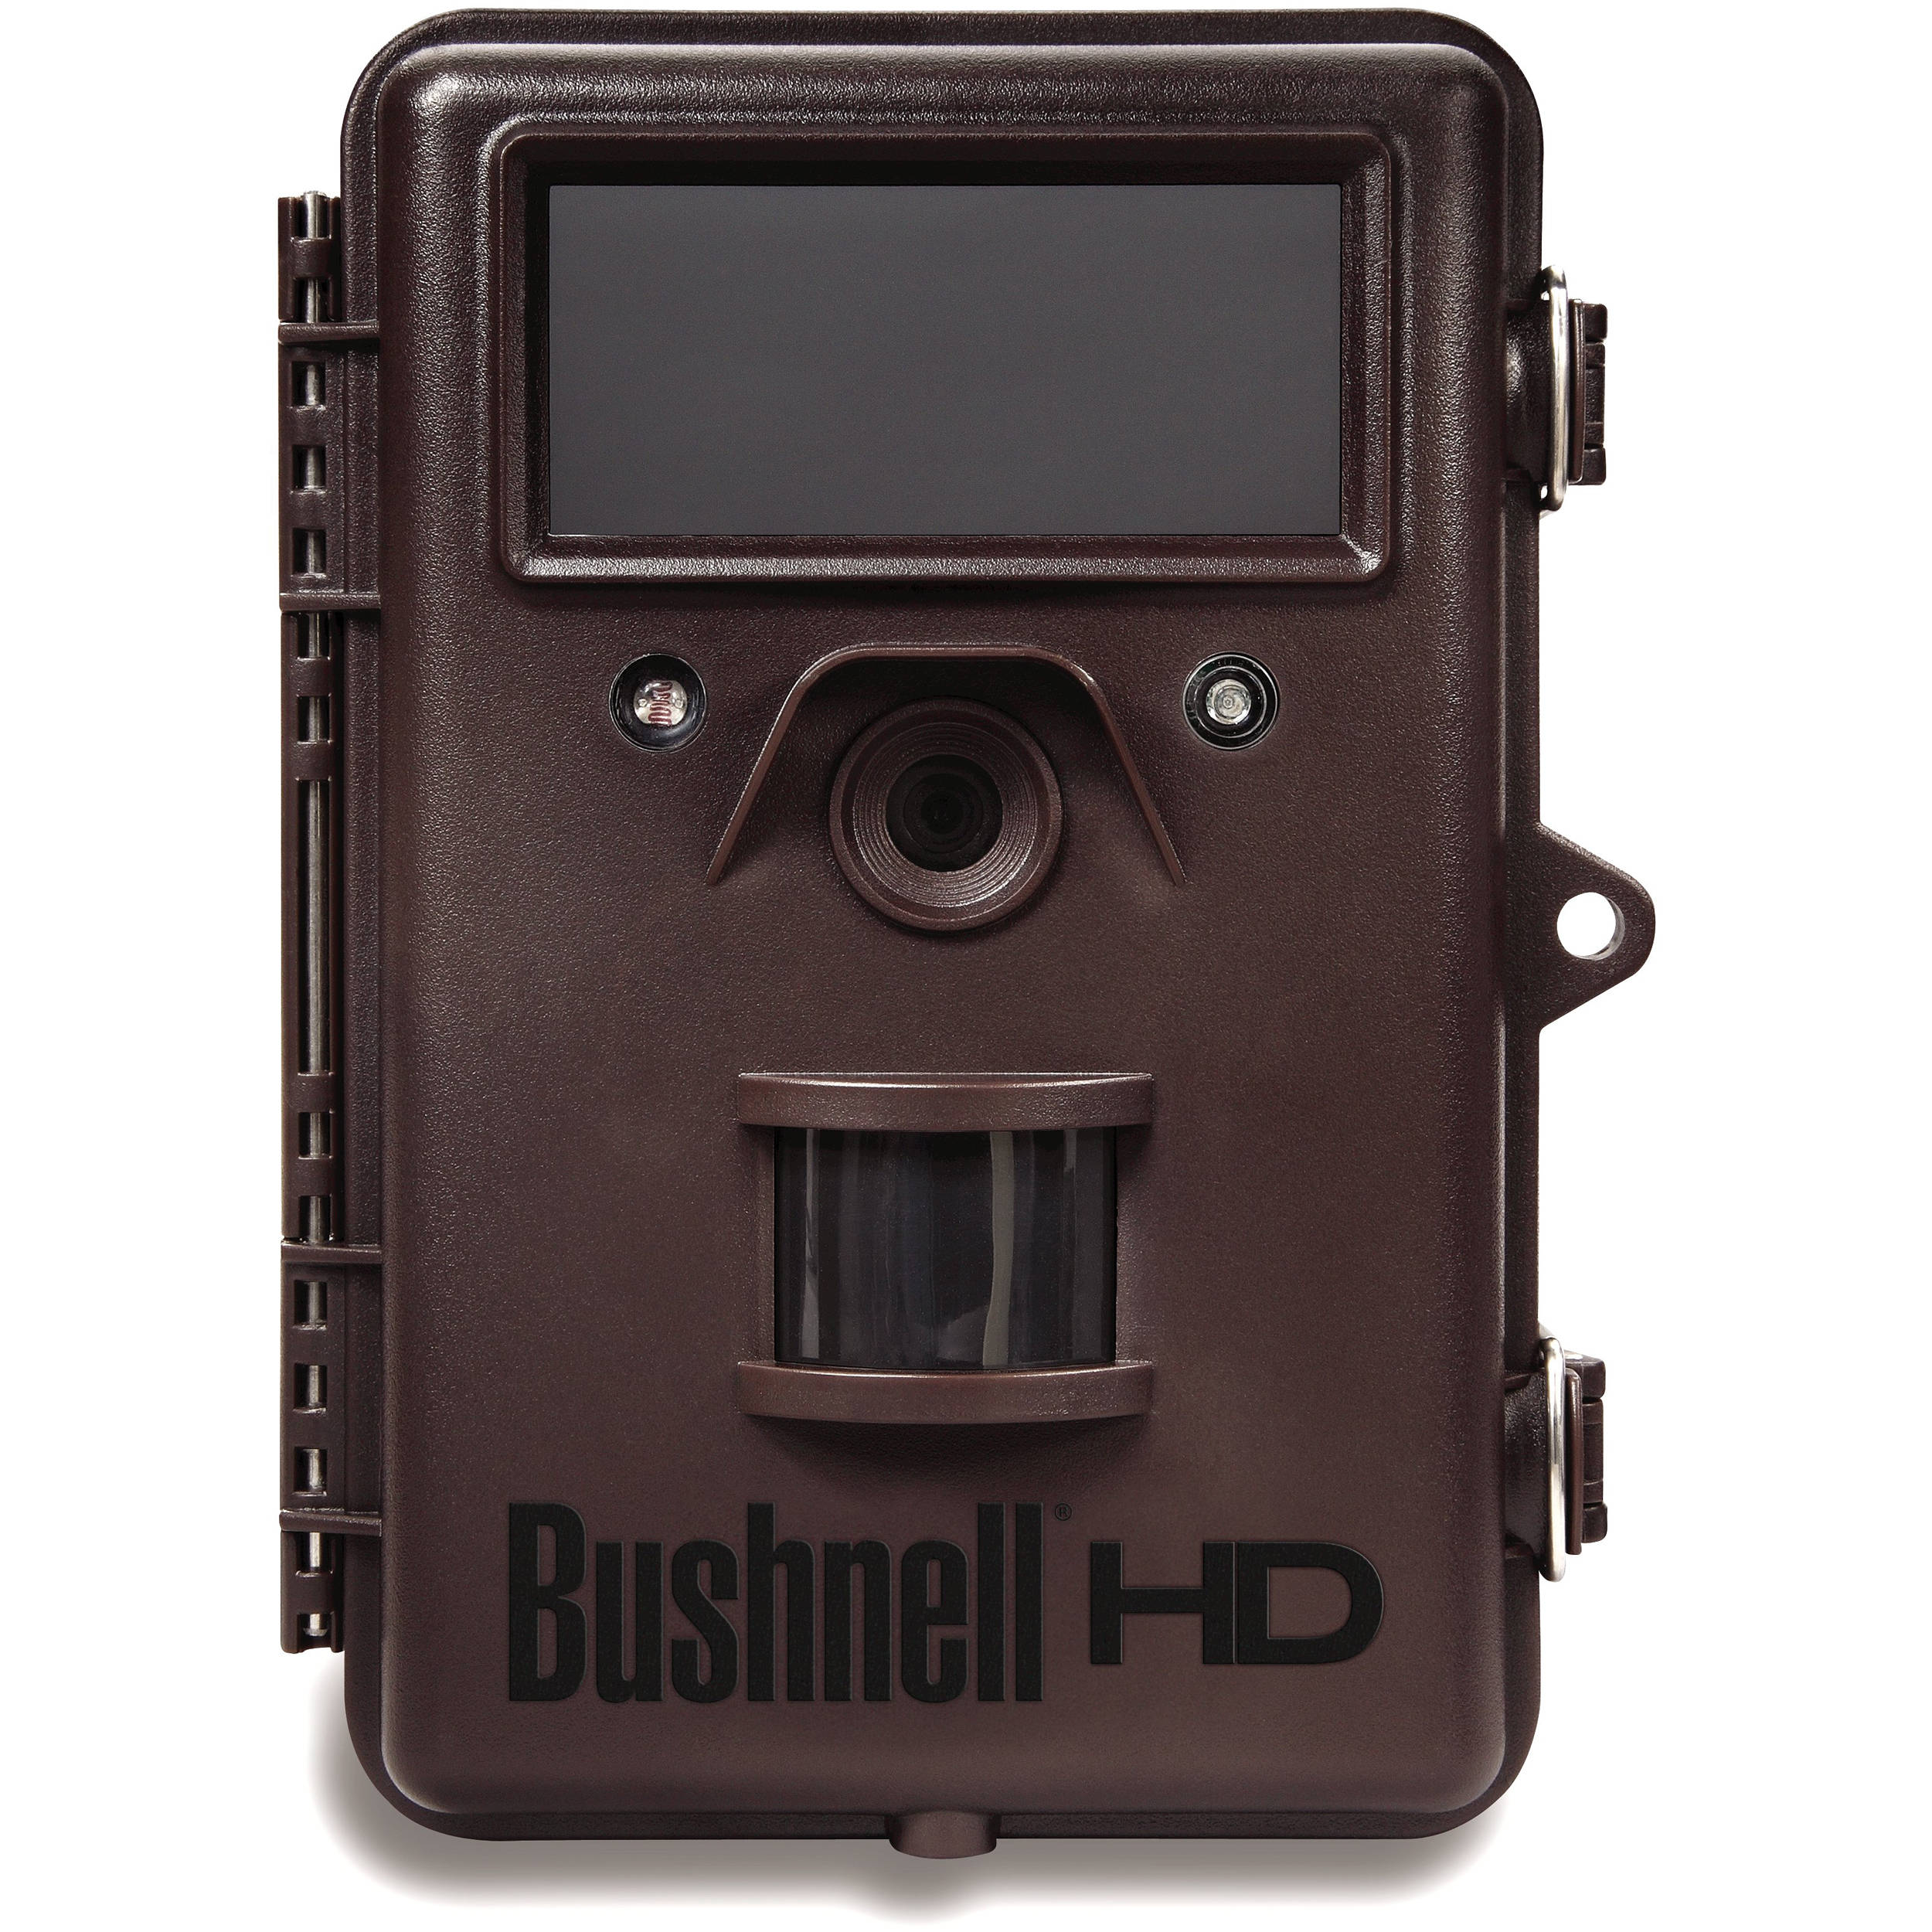 bushnell 8mp trophy cam hd max trail camera with color 119477c. Black Bedroom Furniture Sets. Home Design Ideas